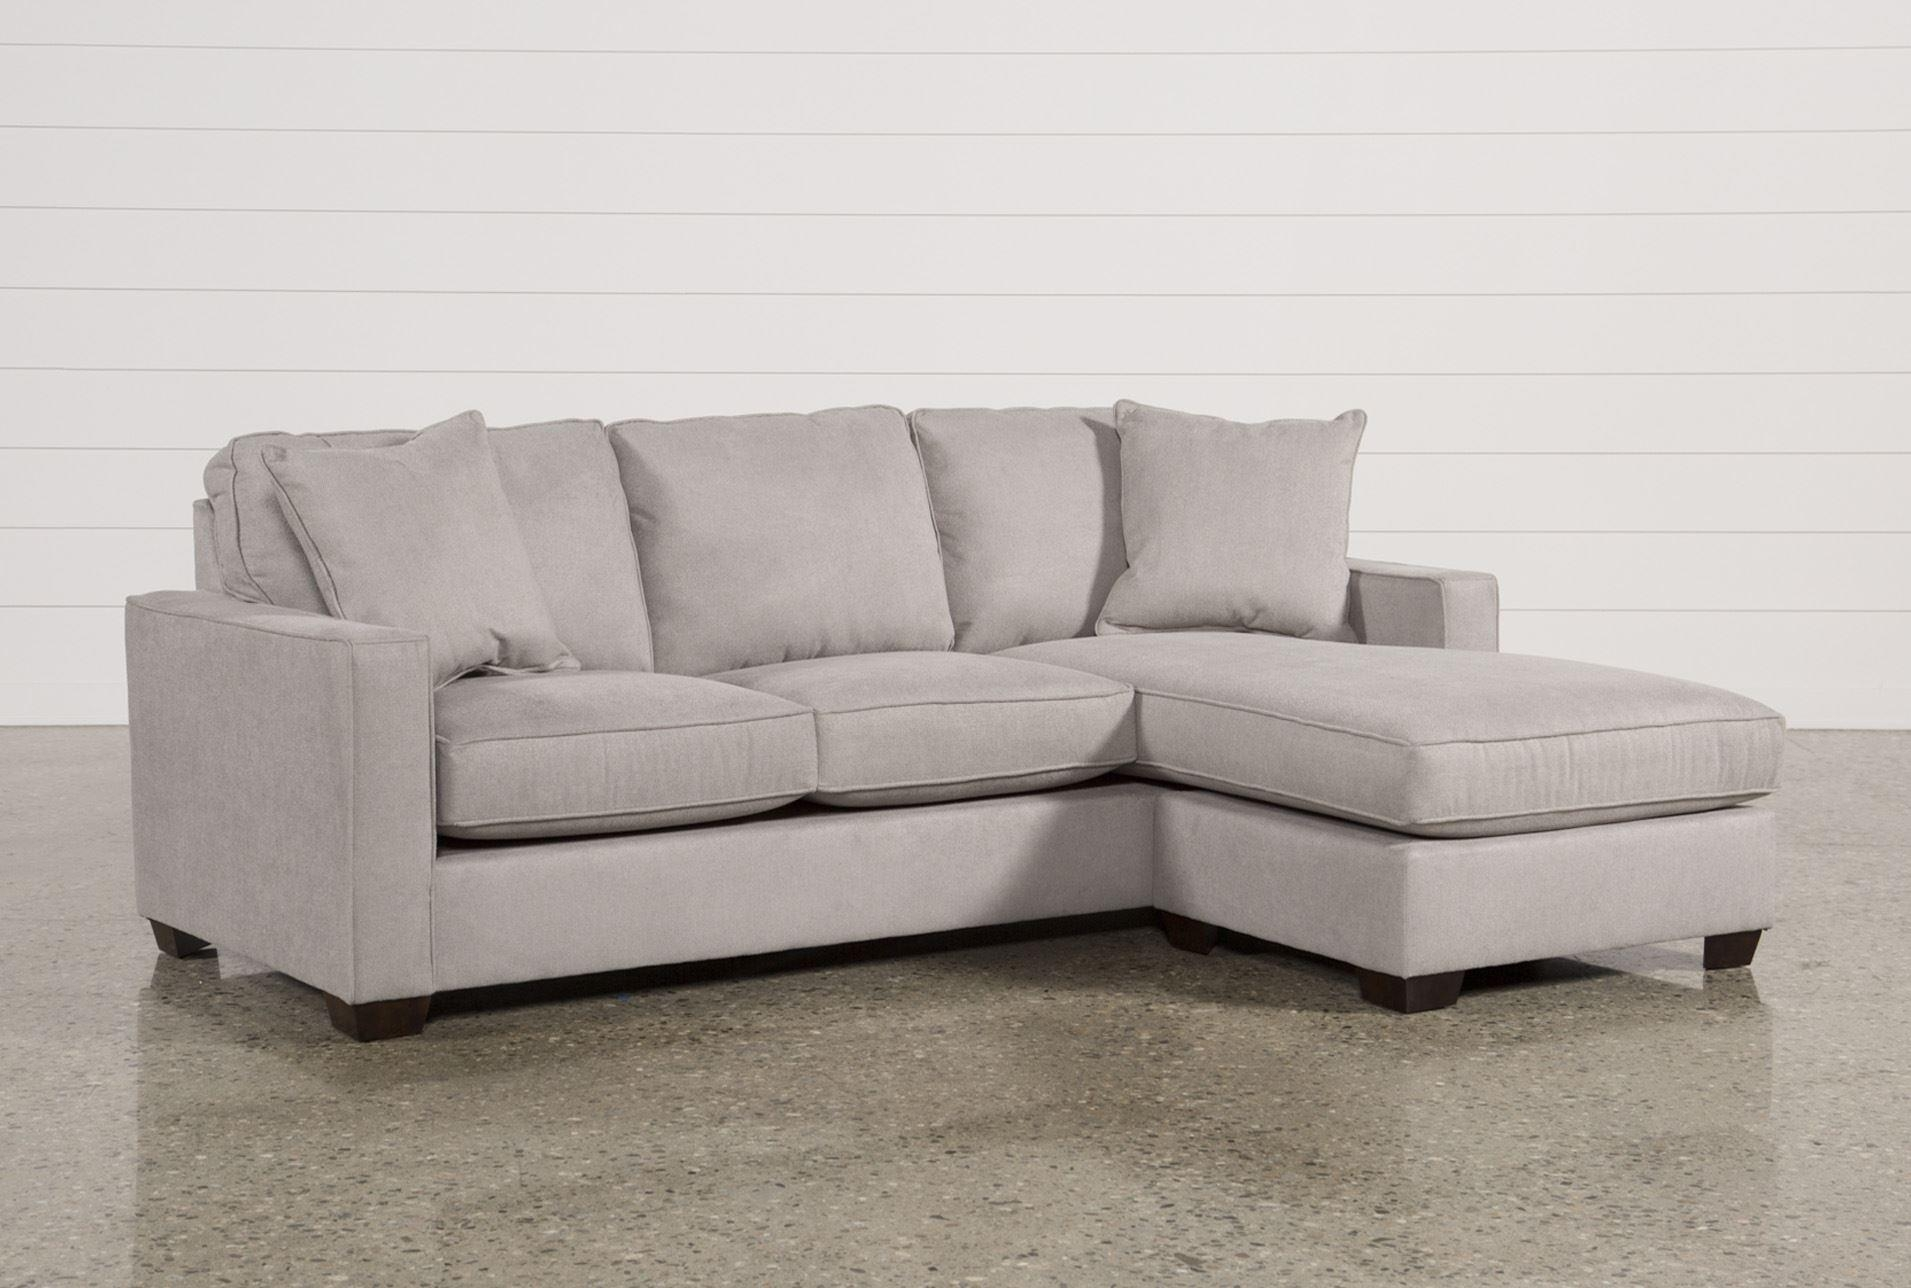 Sofas : Wonderful Oval Coffee Table Coffee And End Tables Leather In Oval Sofas (View 5 of 21)